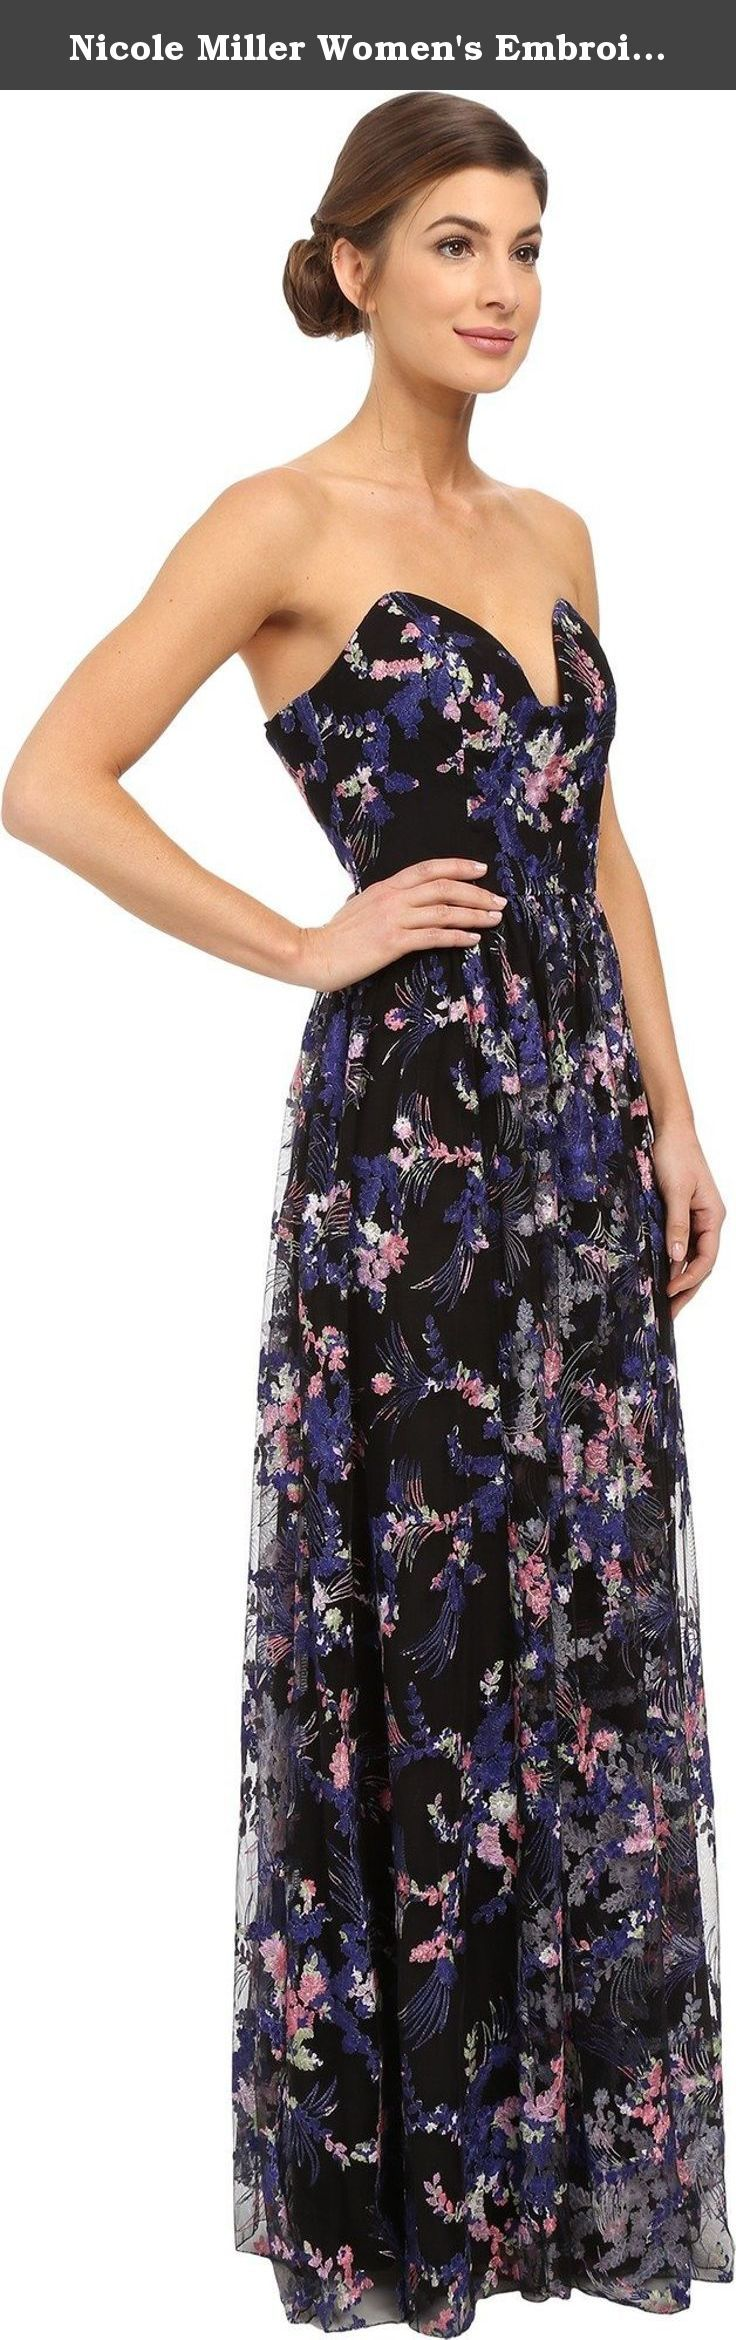 Nicole Miller Women's Embroidered Flowers Strapless Plunge Gown Black/Multi Dress. Nicole Miller Size Chart Lightweight, strapless gown flaunts a full skirt and allover floral embroidered design. Fitted bodice with princess seams, flexible boning, and silicone taping for added support. Plunging V-neckline. Full mesh skirt. Floor-sweeping hemline. Back hook and zipper closure. Fully lined. 100% polyester;Lining: 100% polyester. Hand wash cold. Made in the U.S.A. and Imported. Measurements:...